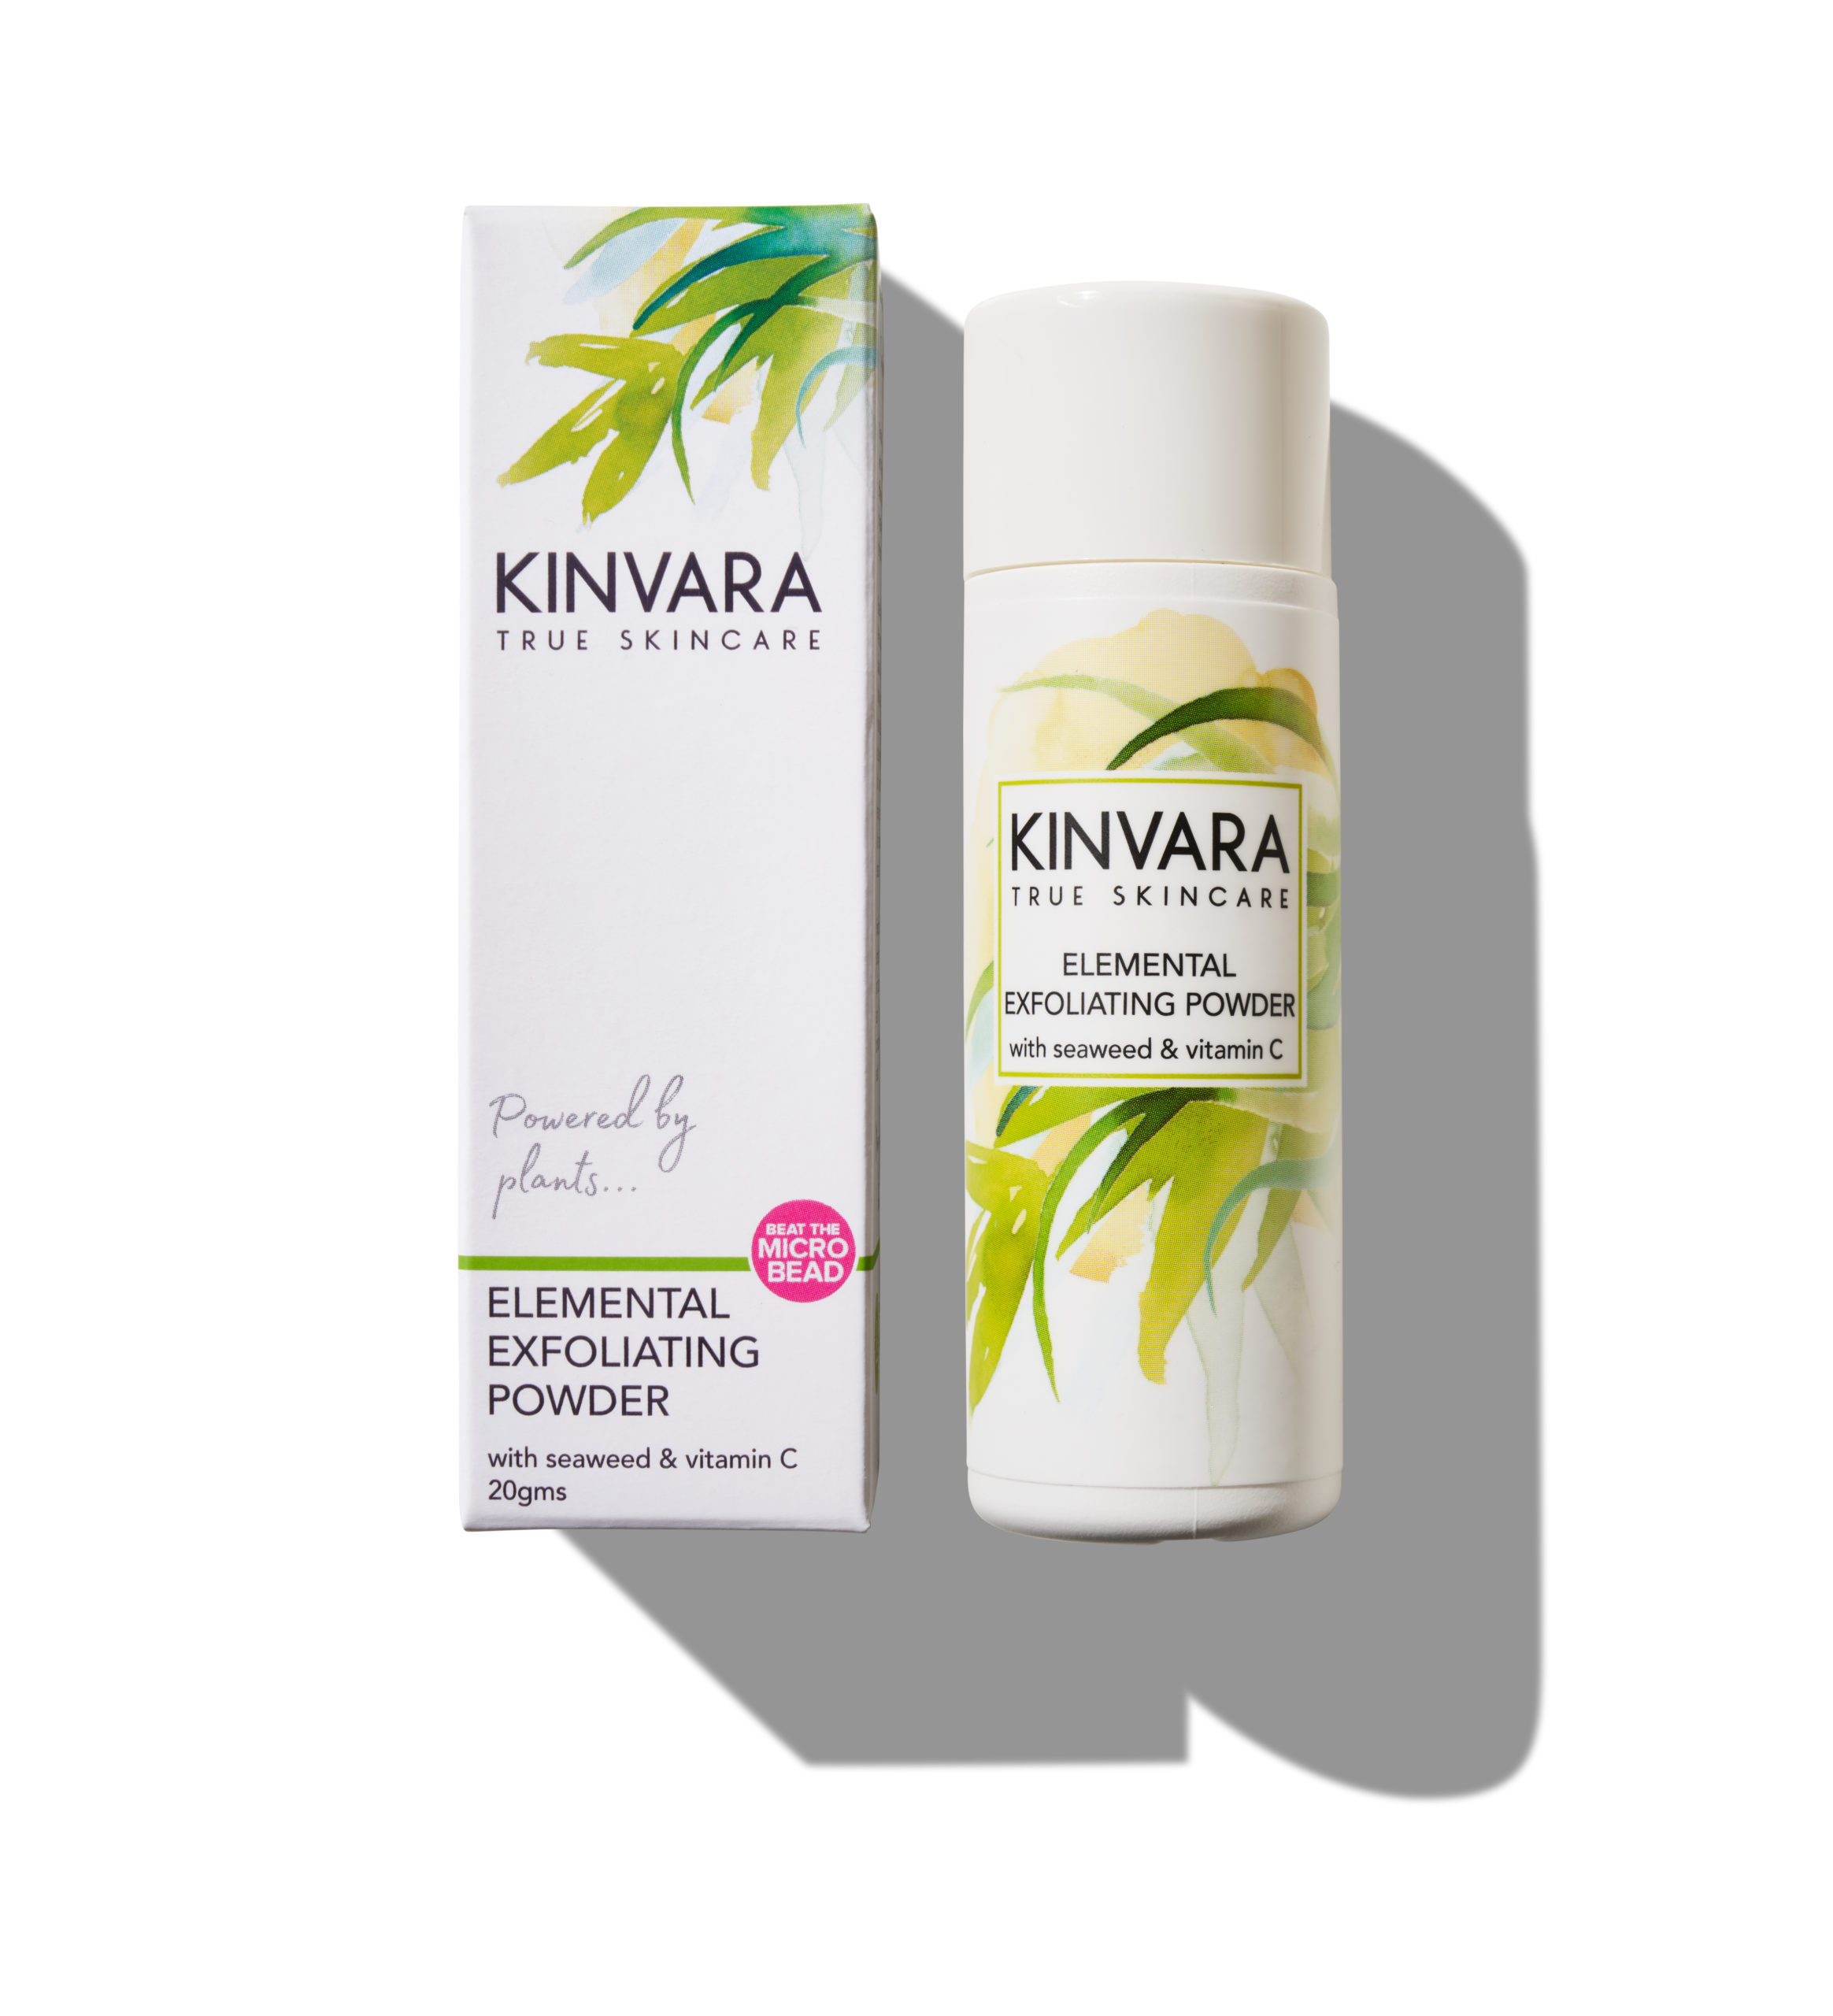 Kinvara Exfoliating powder 20g